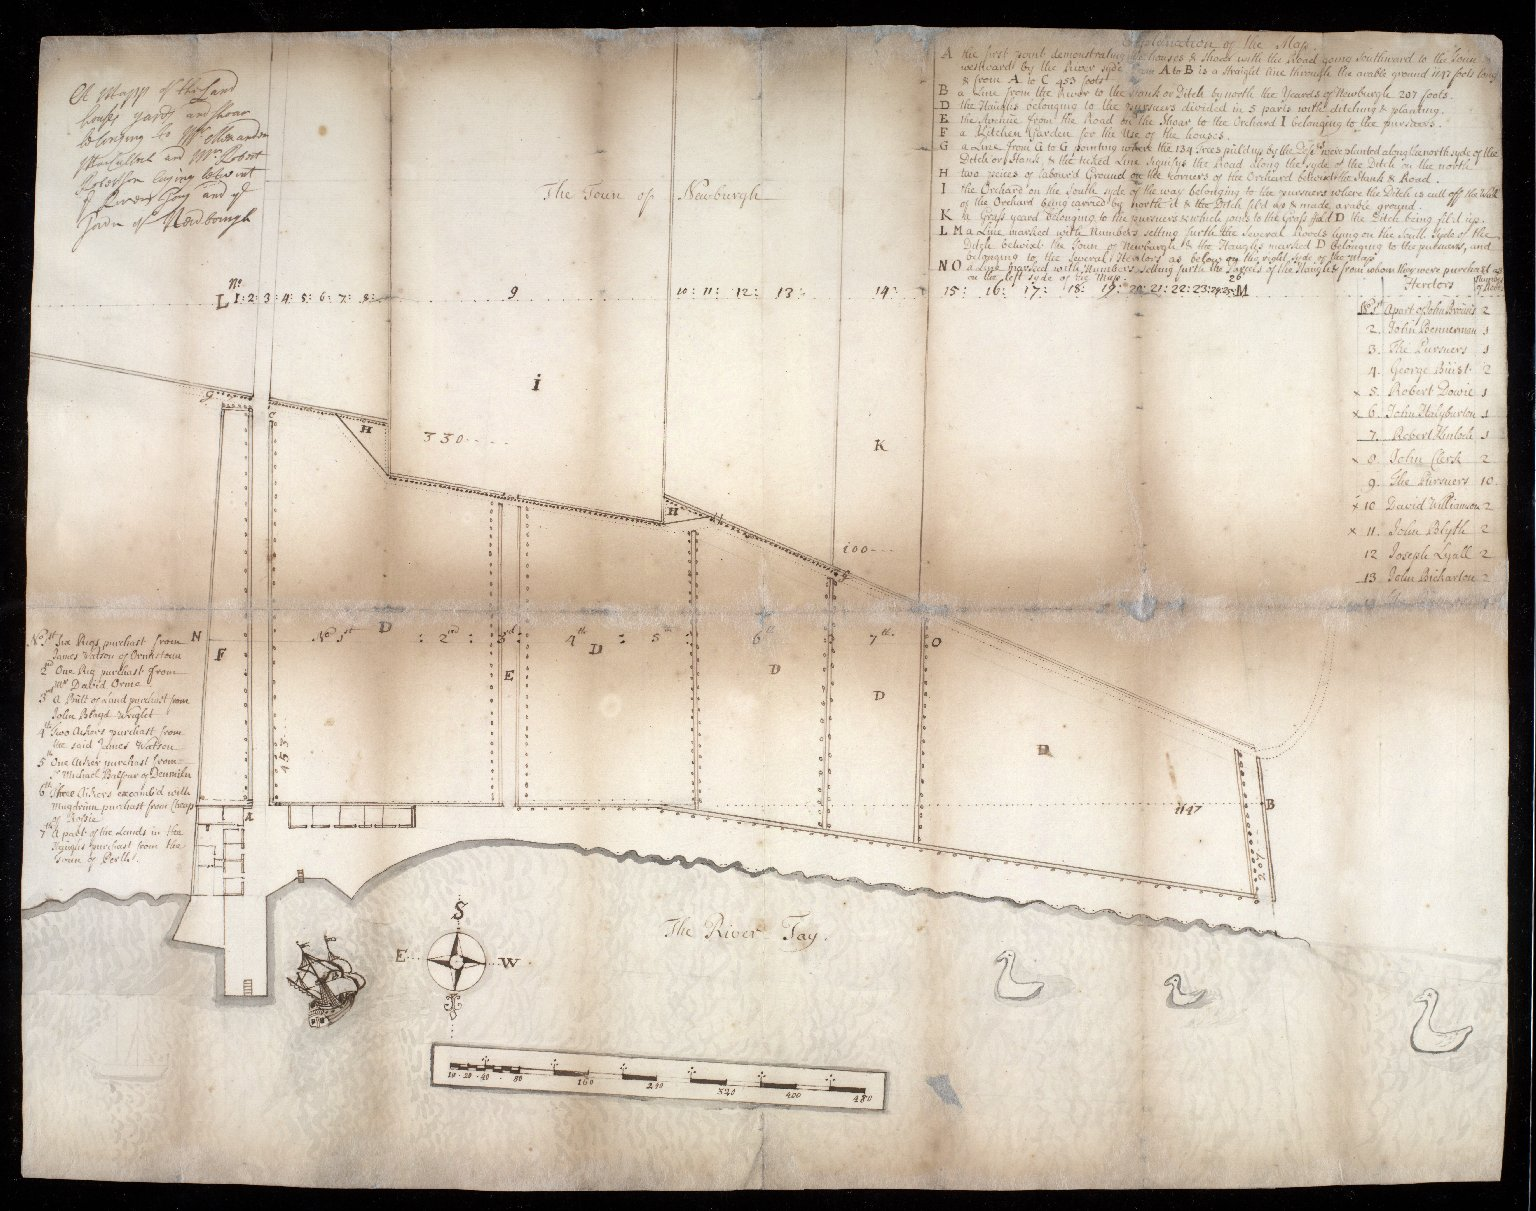 A mappe of the Land [...] yards [...] belonging to [...] MacCulloch and Mr. Robert Robertson laying [...] River Tay and ye Town of Newburgh. [1 of 1]